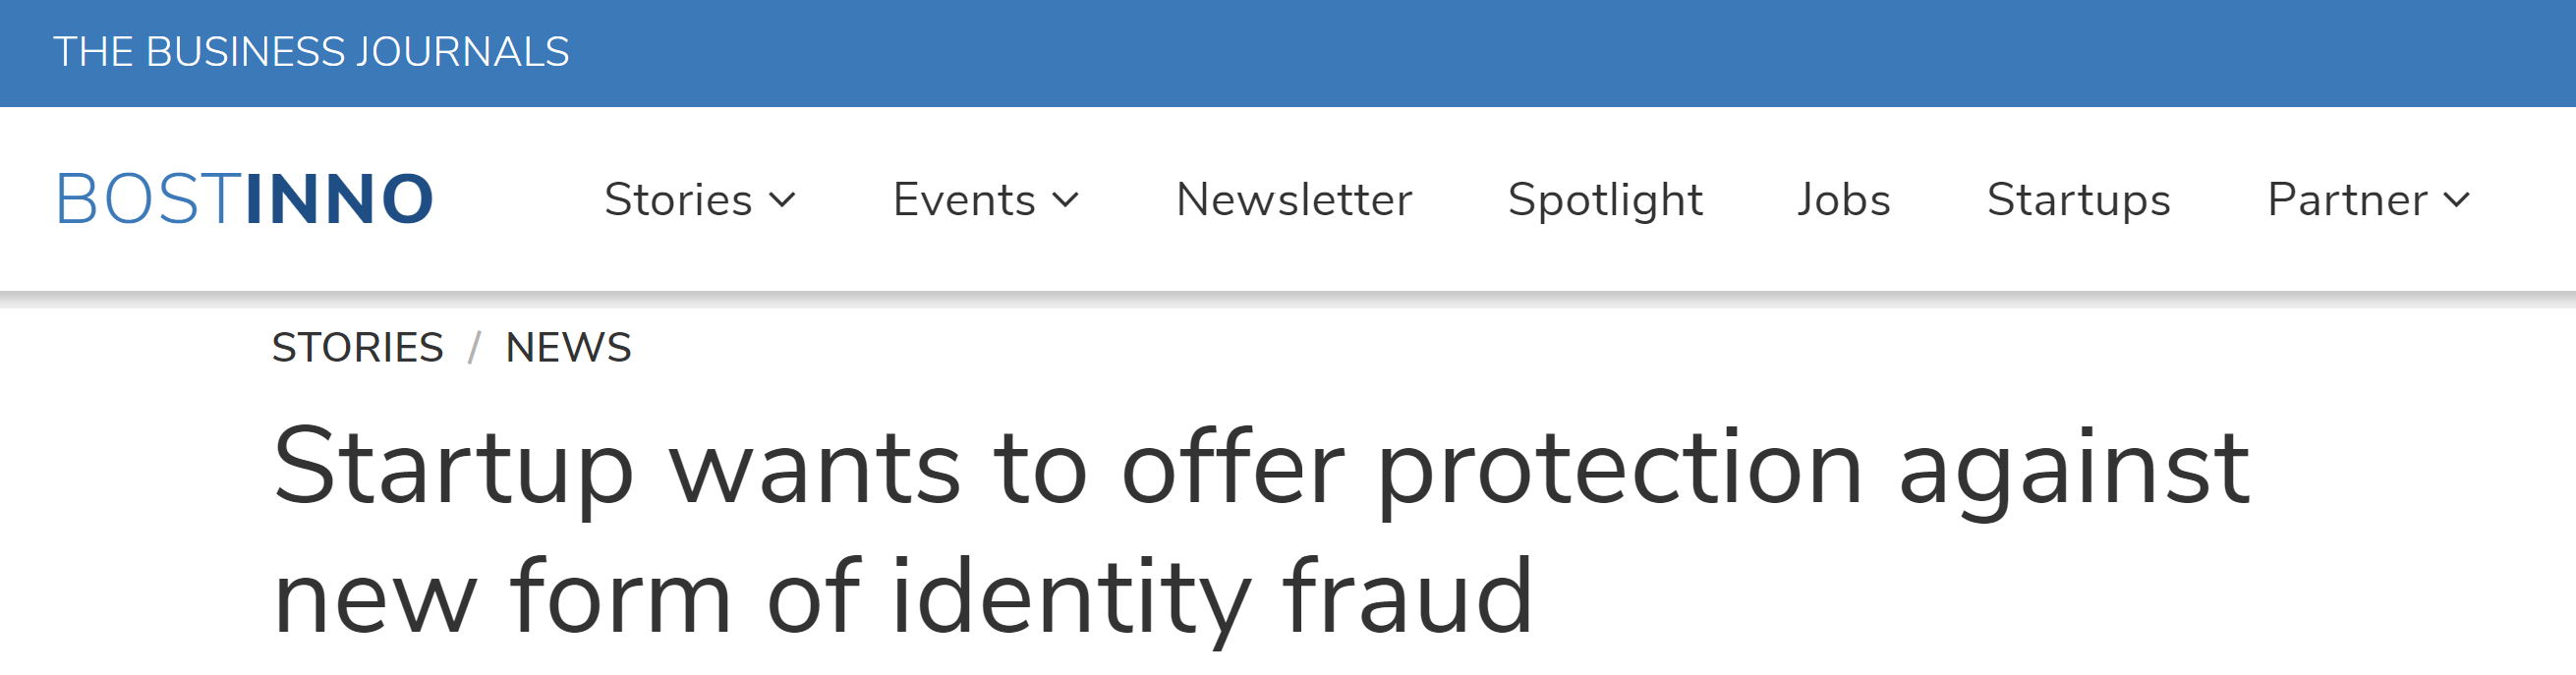 BostInno article on synthetic identity fraud featuring FiVerity